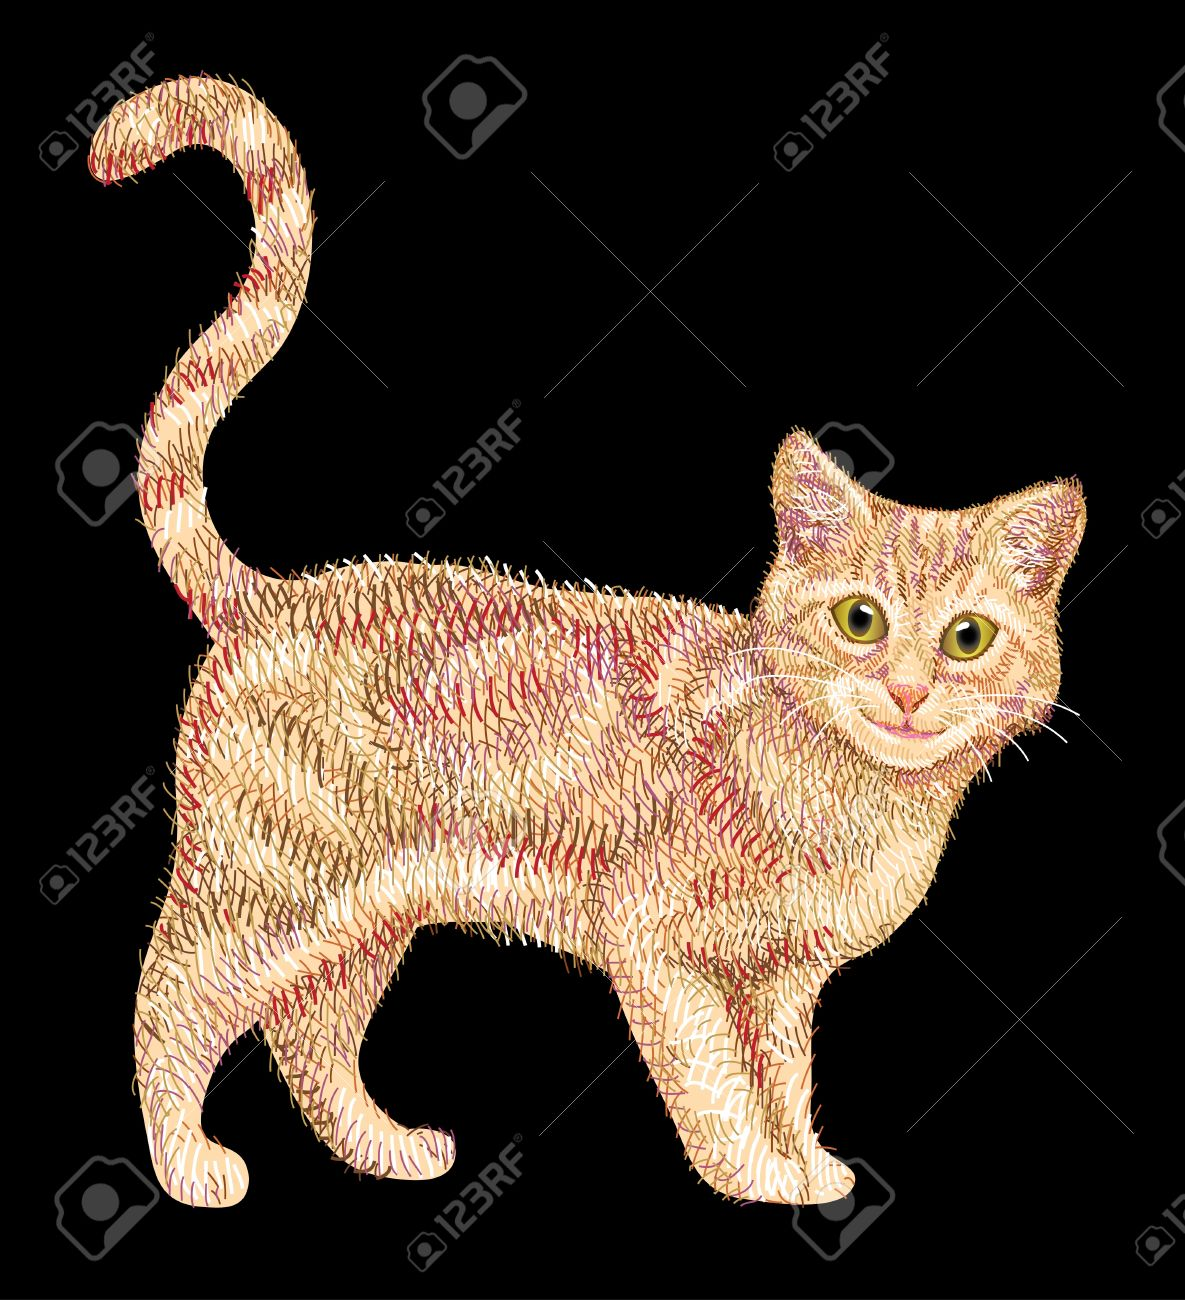 Cute cat drawing with lines and color combination. Beautiful pet animal sketch with artistic brush stroke Stock Vector - 17157879